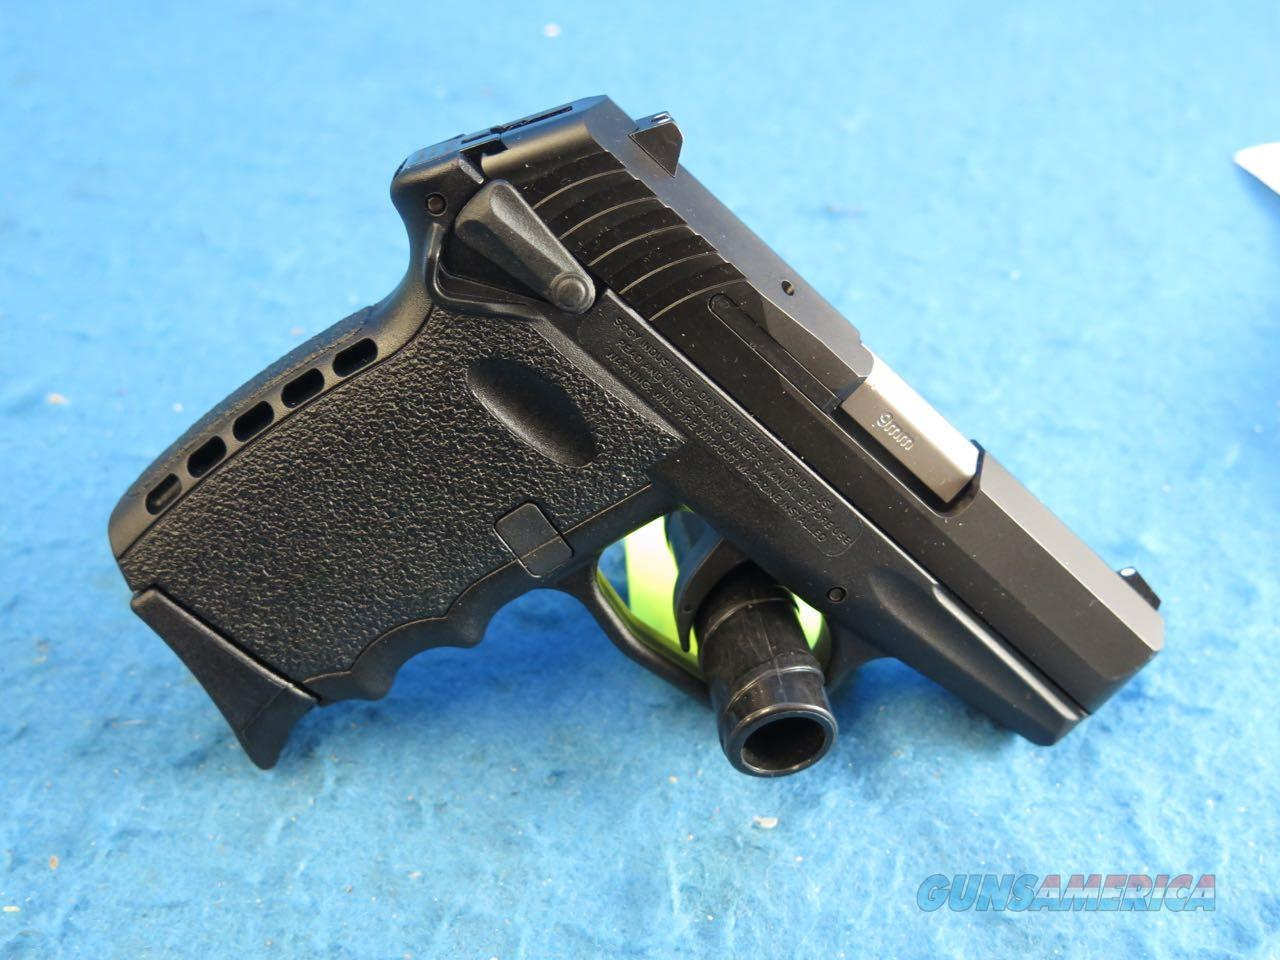 SCCY Model CPX-1 CB 9mm Pistol Black/Black **New**  Guns > Pistols > SCCY Pistols > CPX1